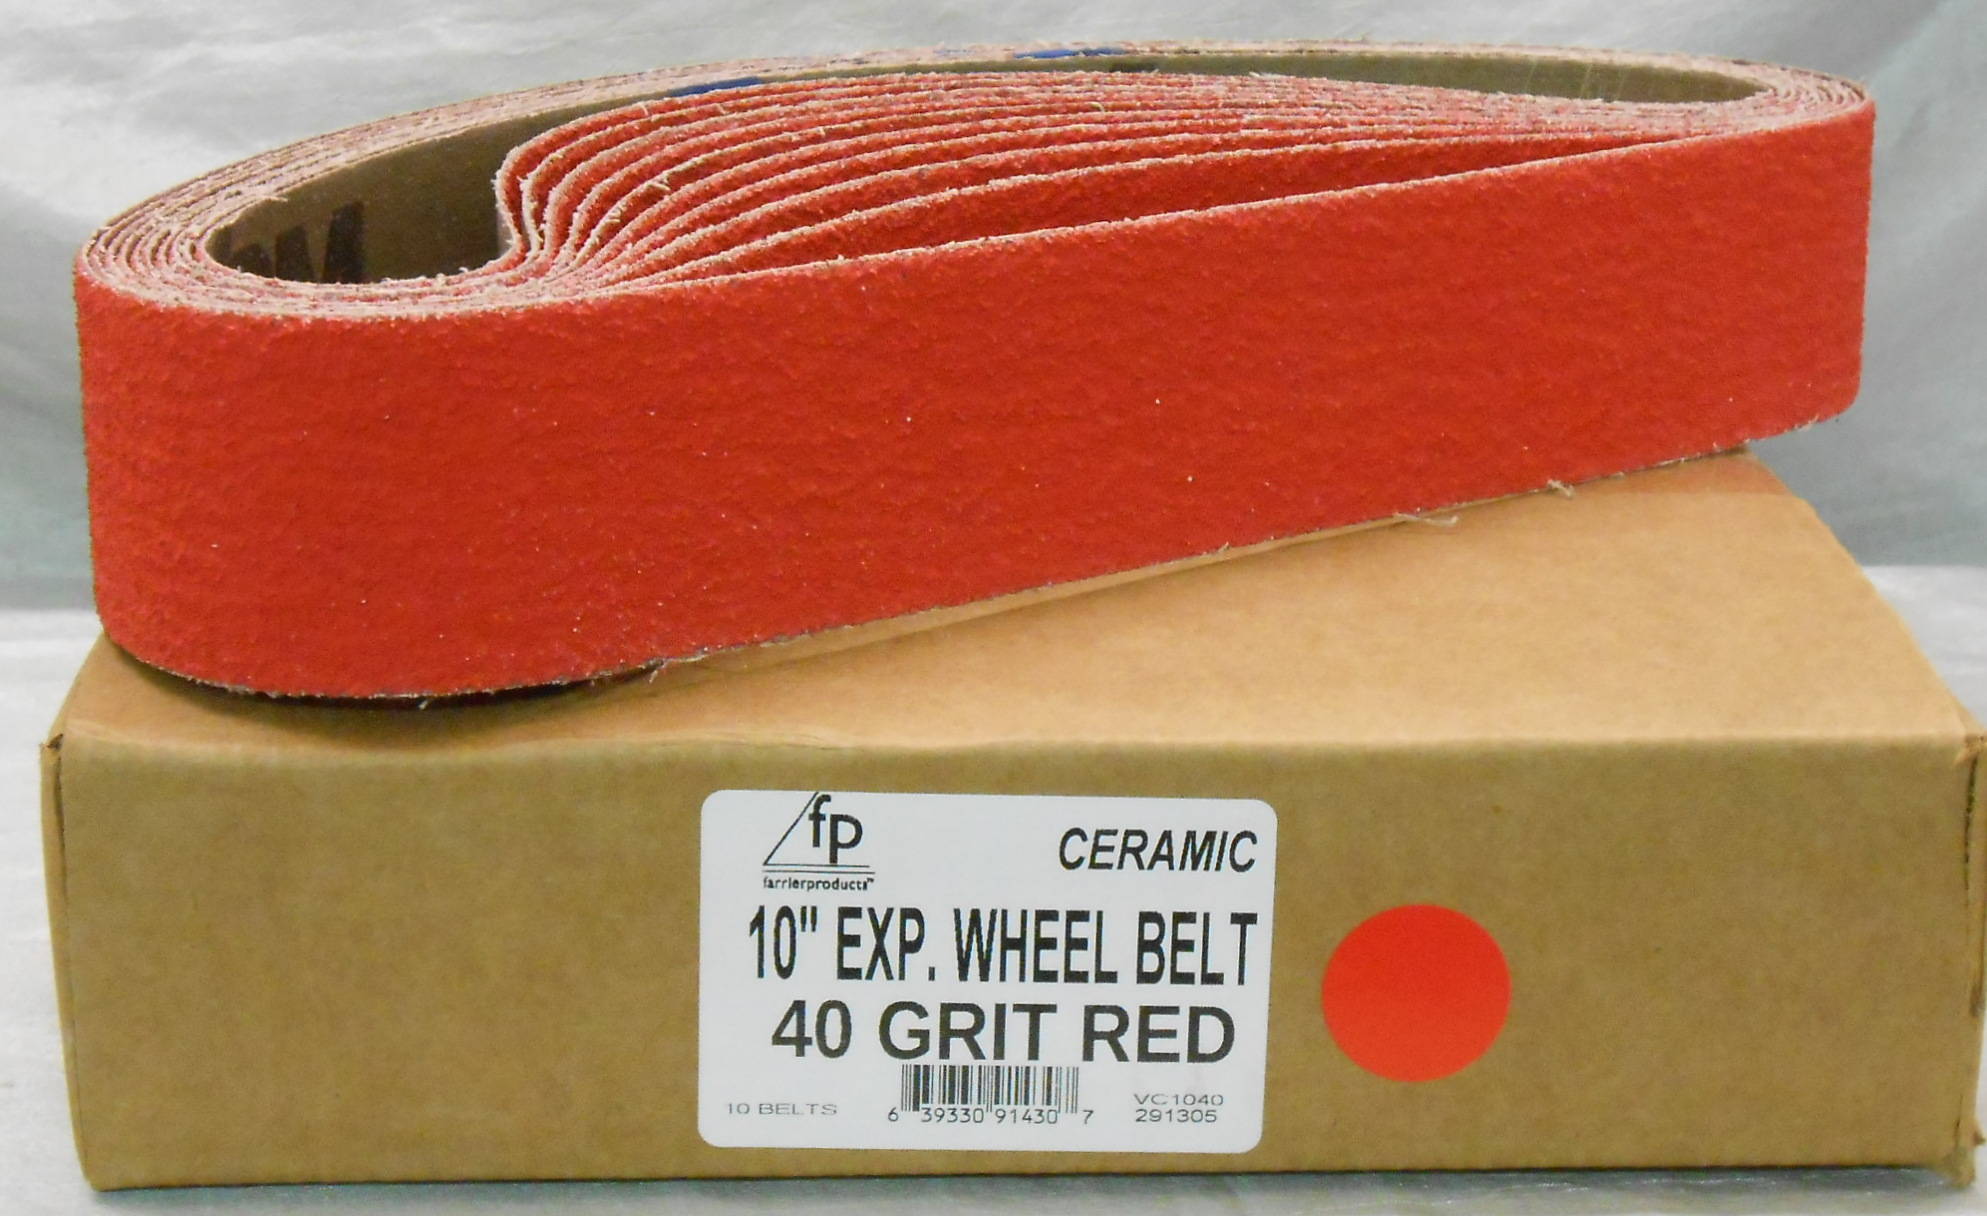 "FP 10"" Ex Wheel Belt 40 Grit Red Ceramic - Box of 10"